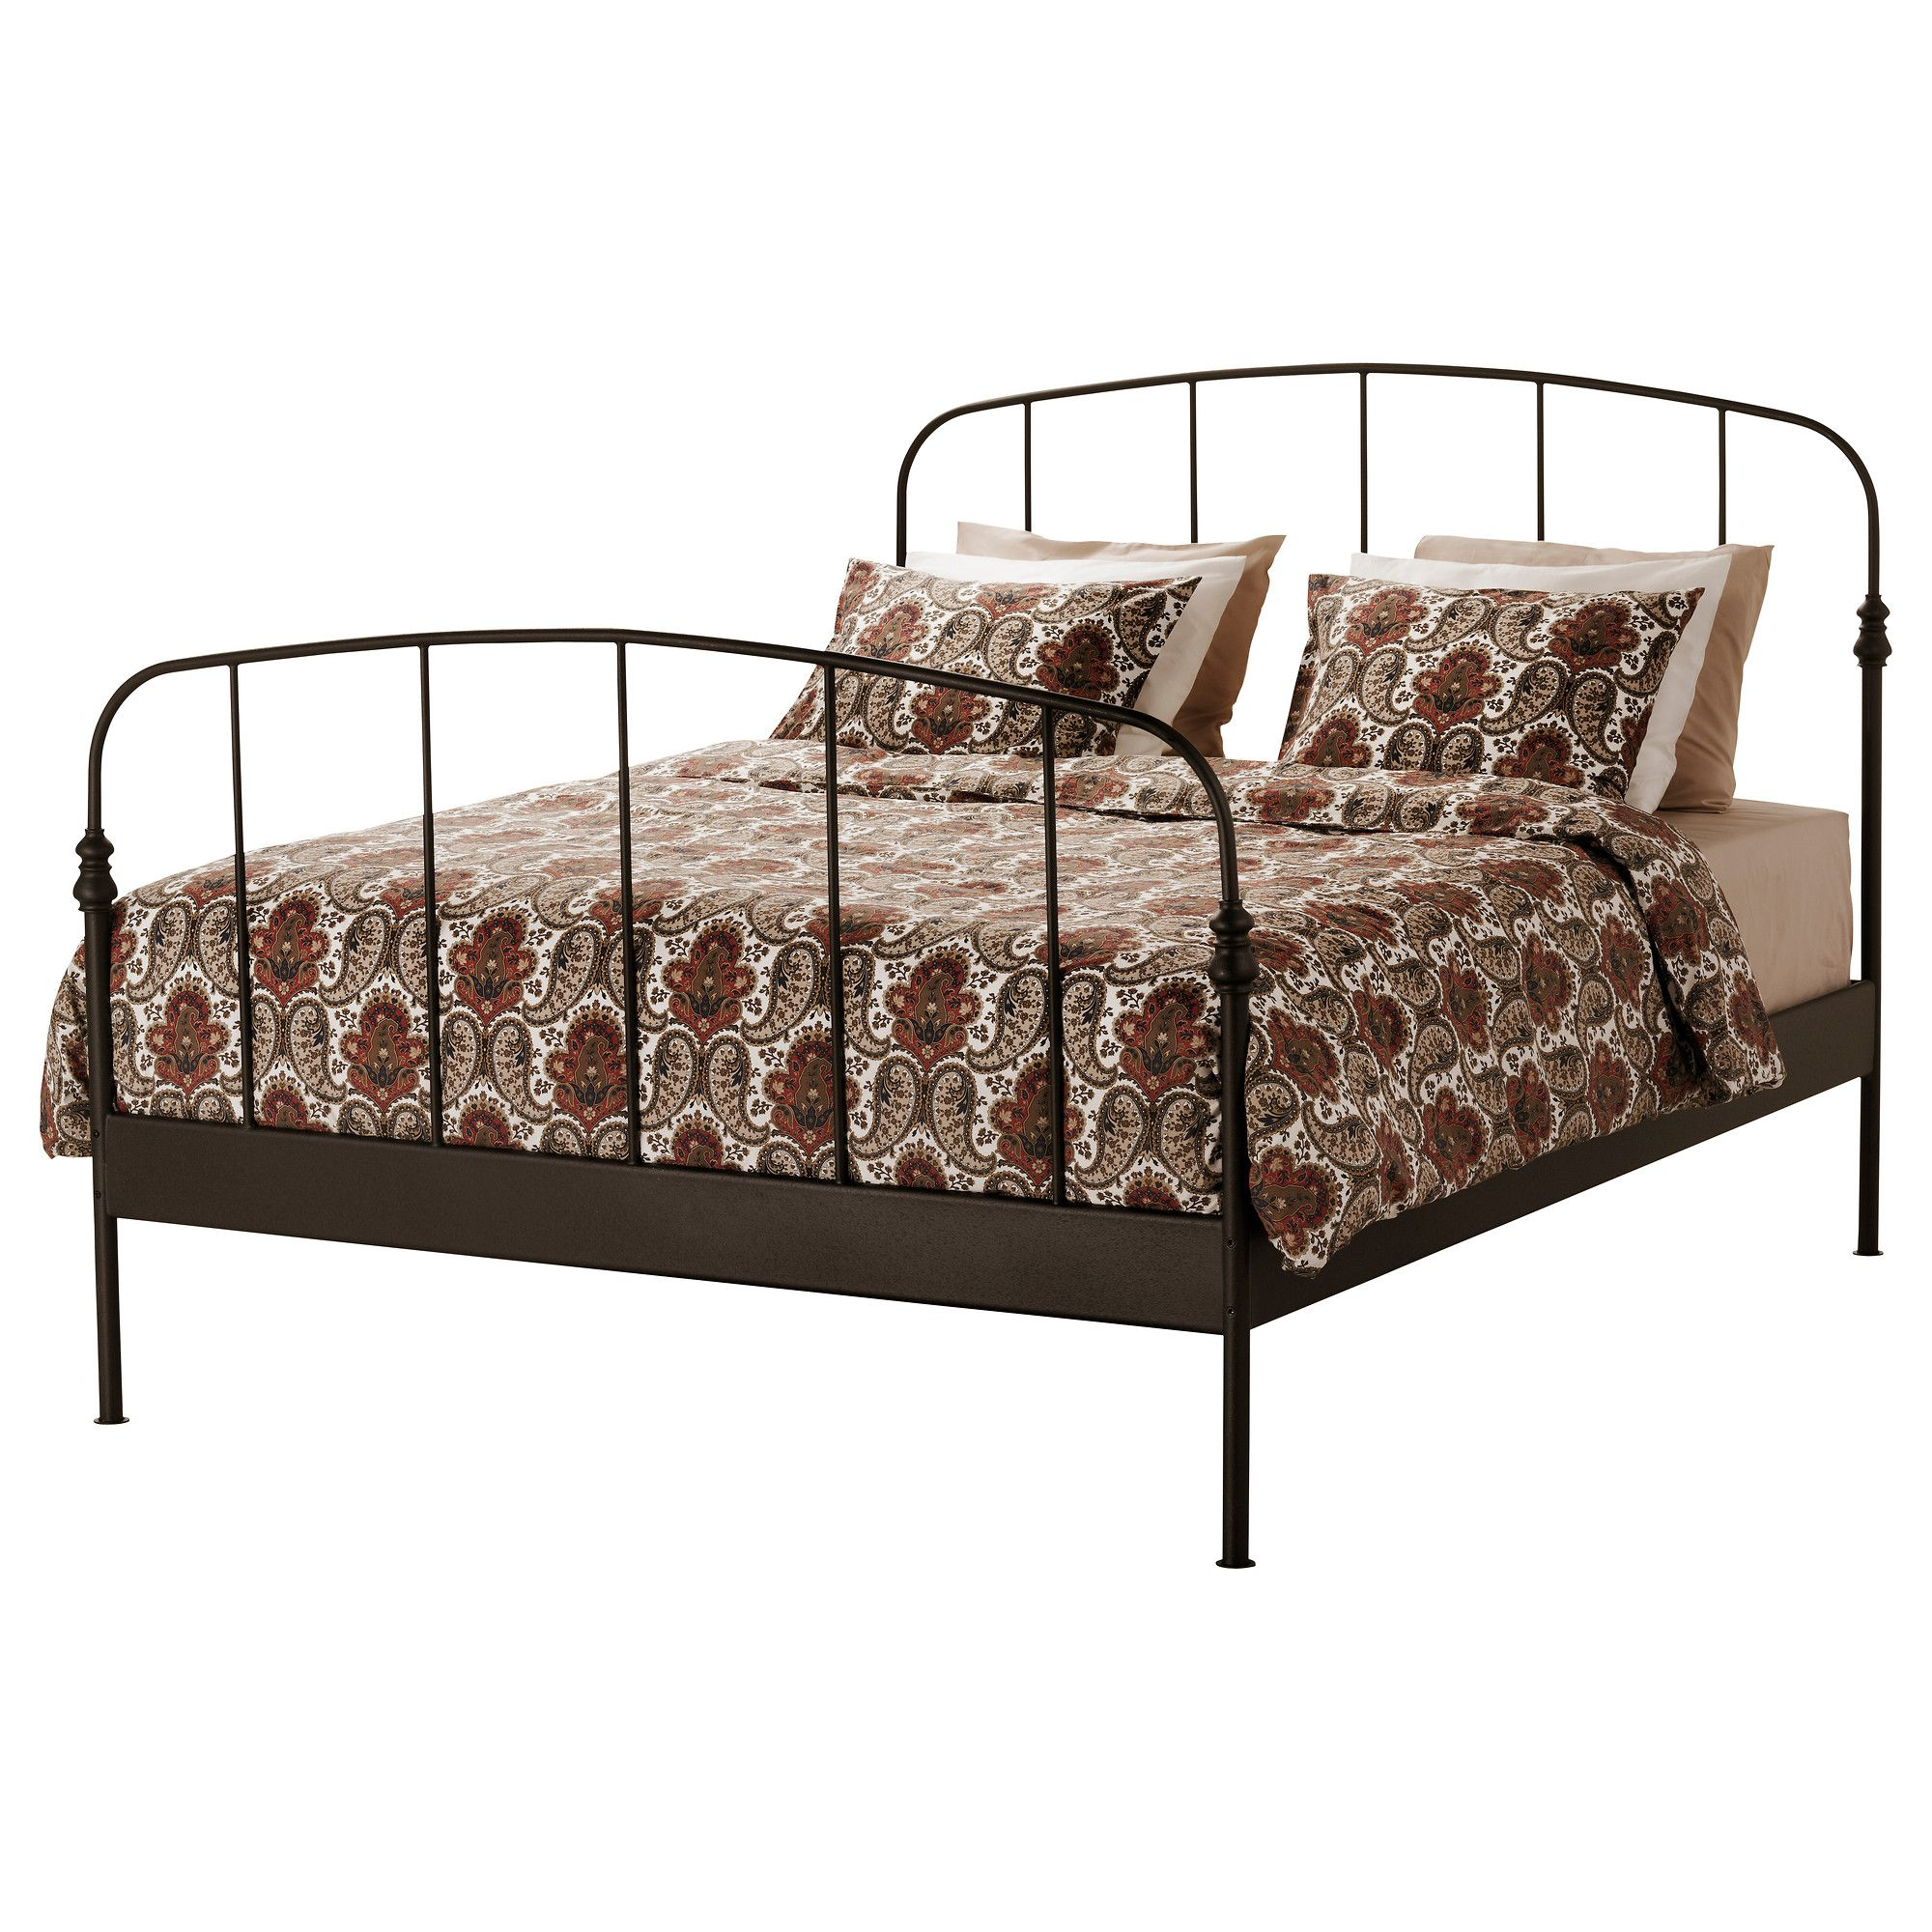 Metalen Frame Bed.A Sweet Little Iron Frame Bed For The Future Guest Room Or As We